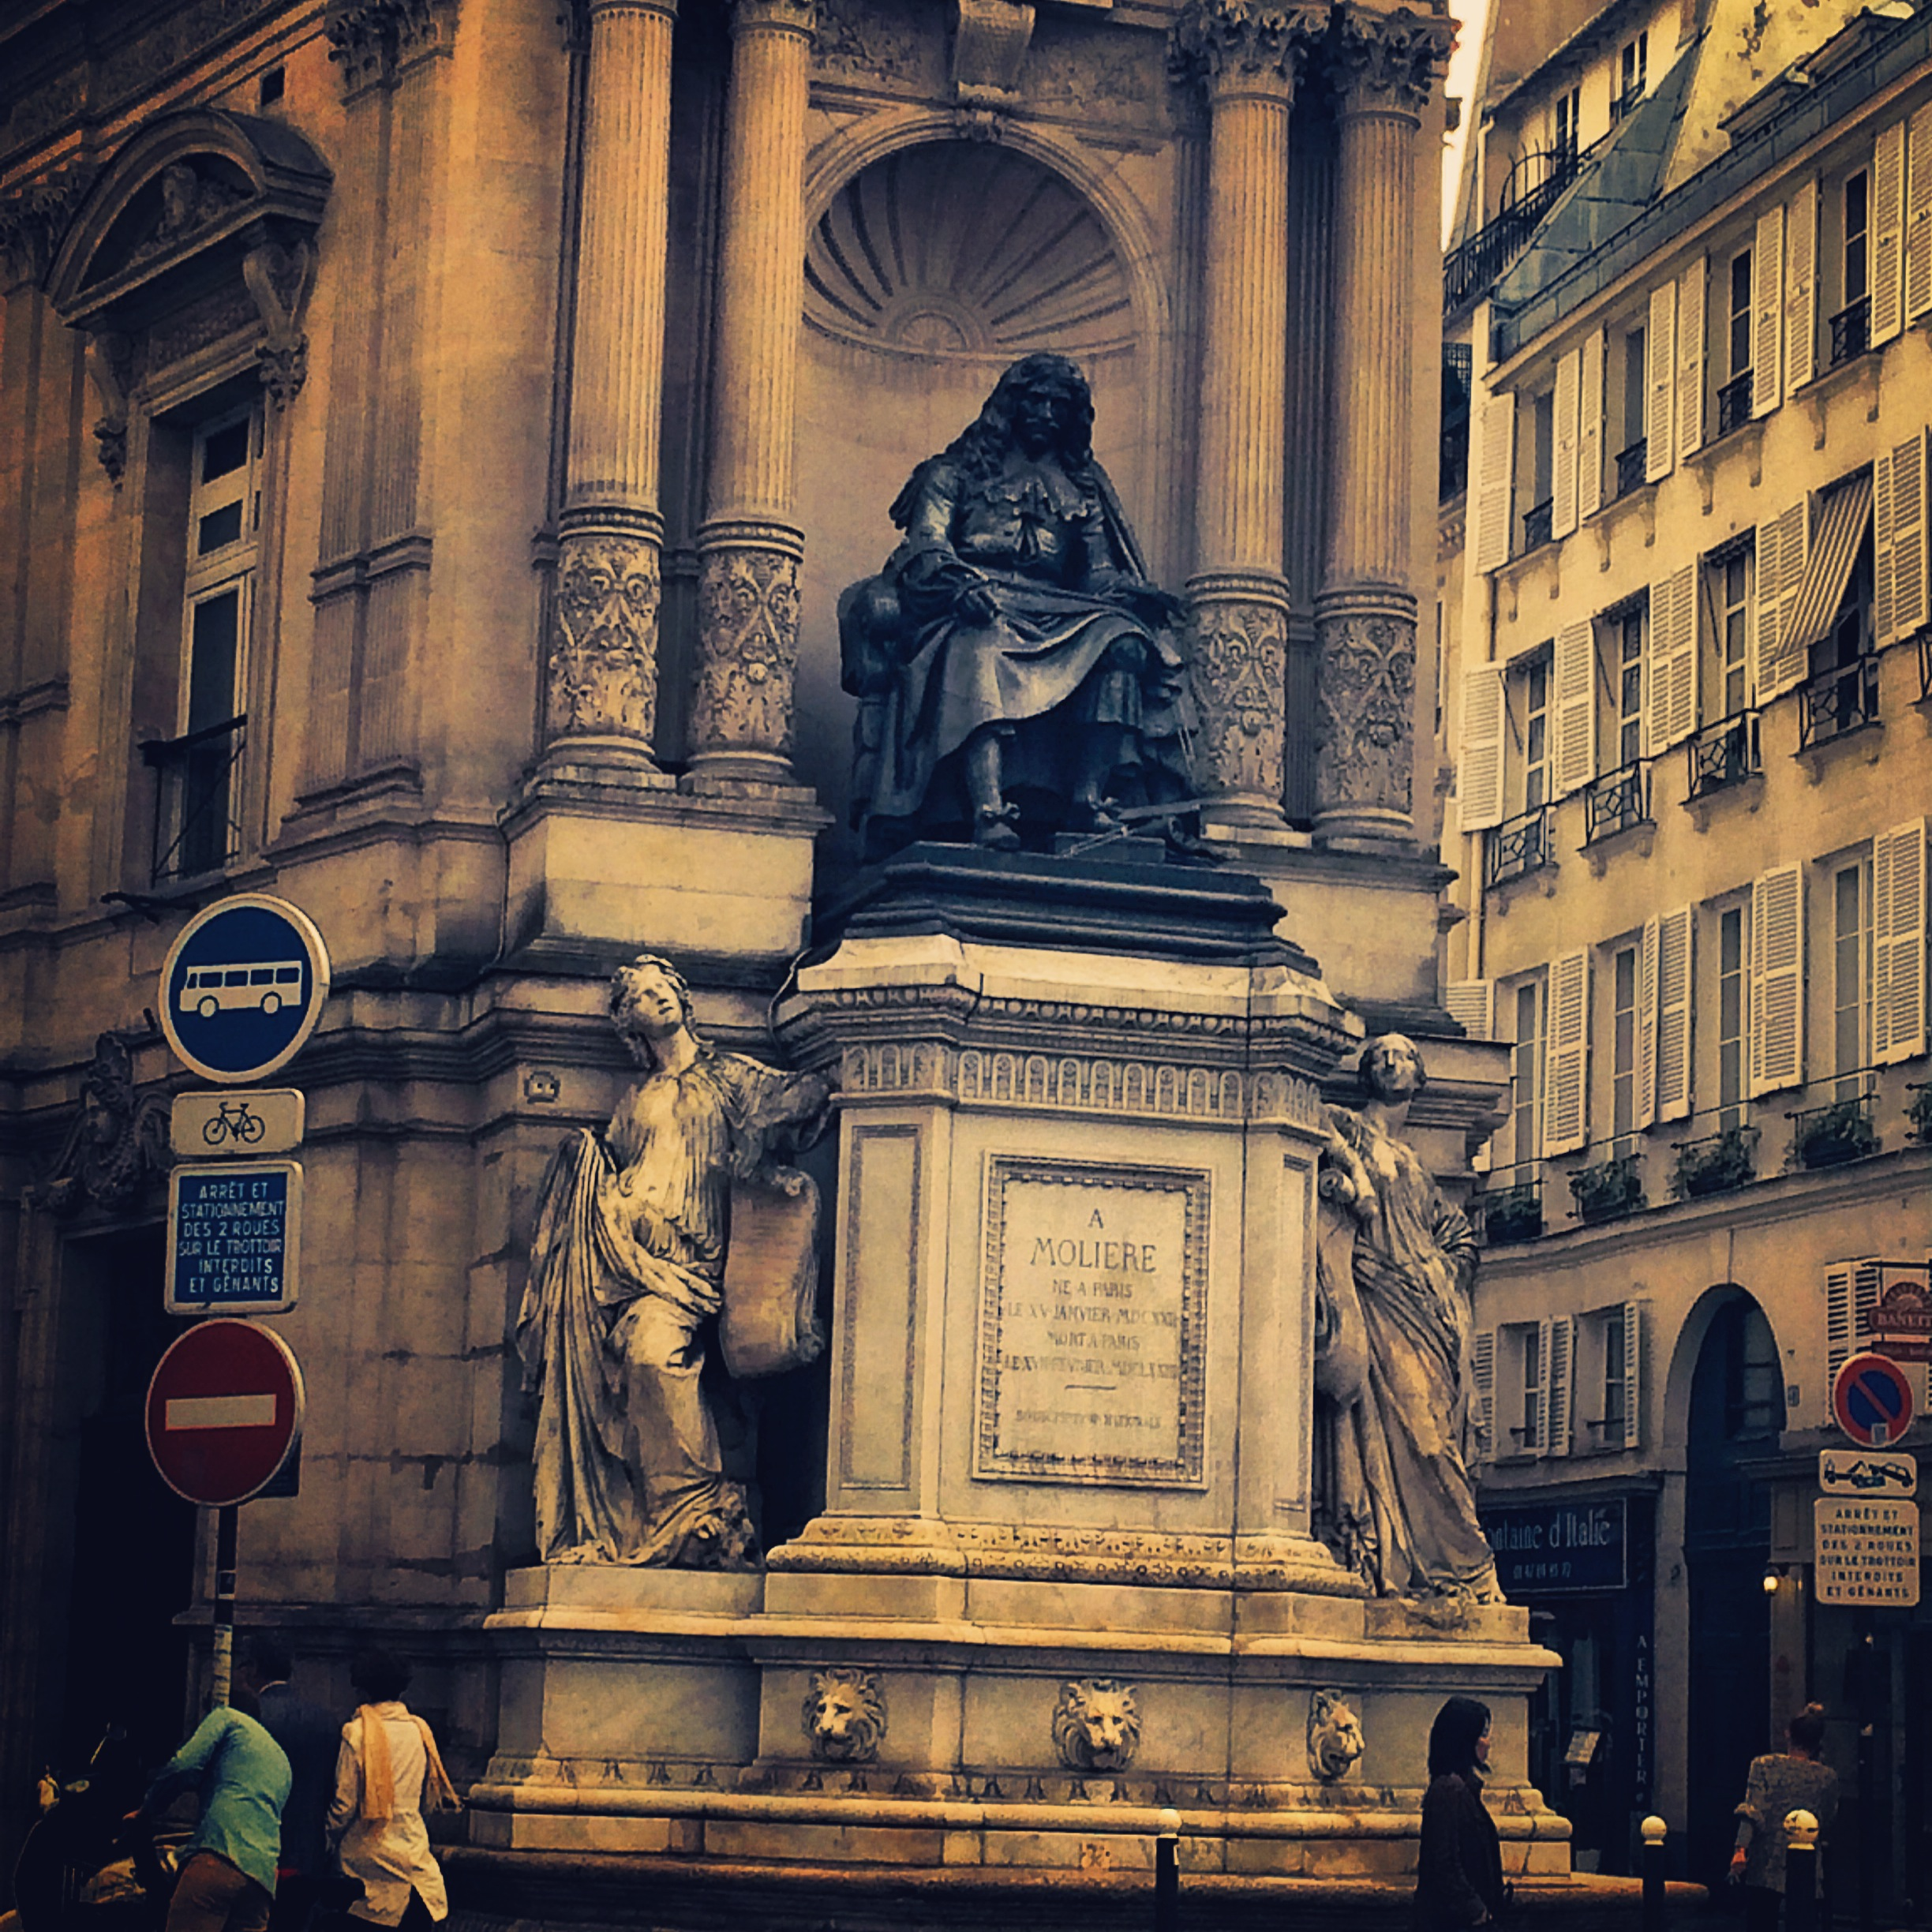 fontaine-moliere